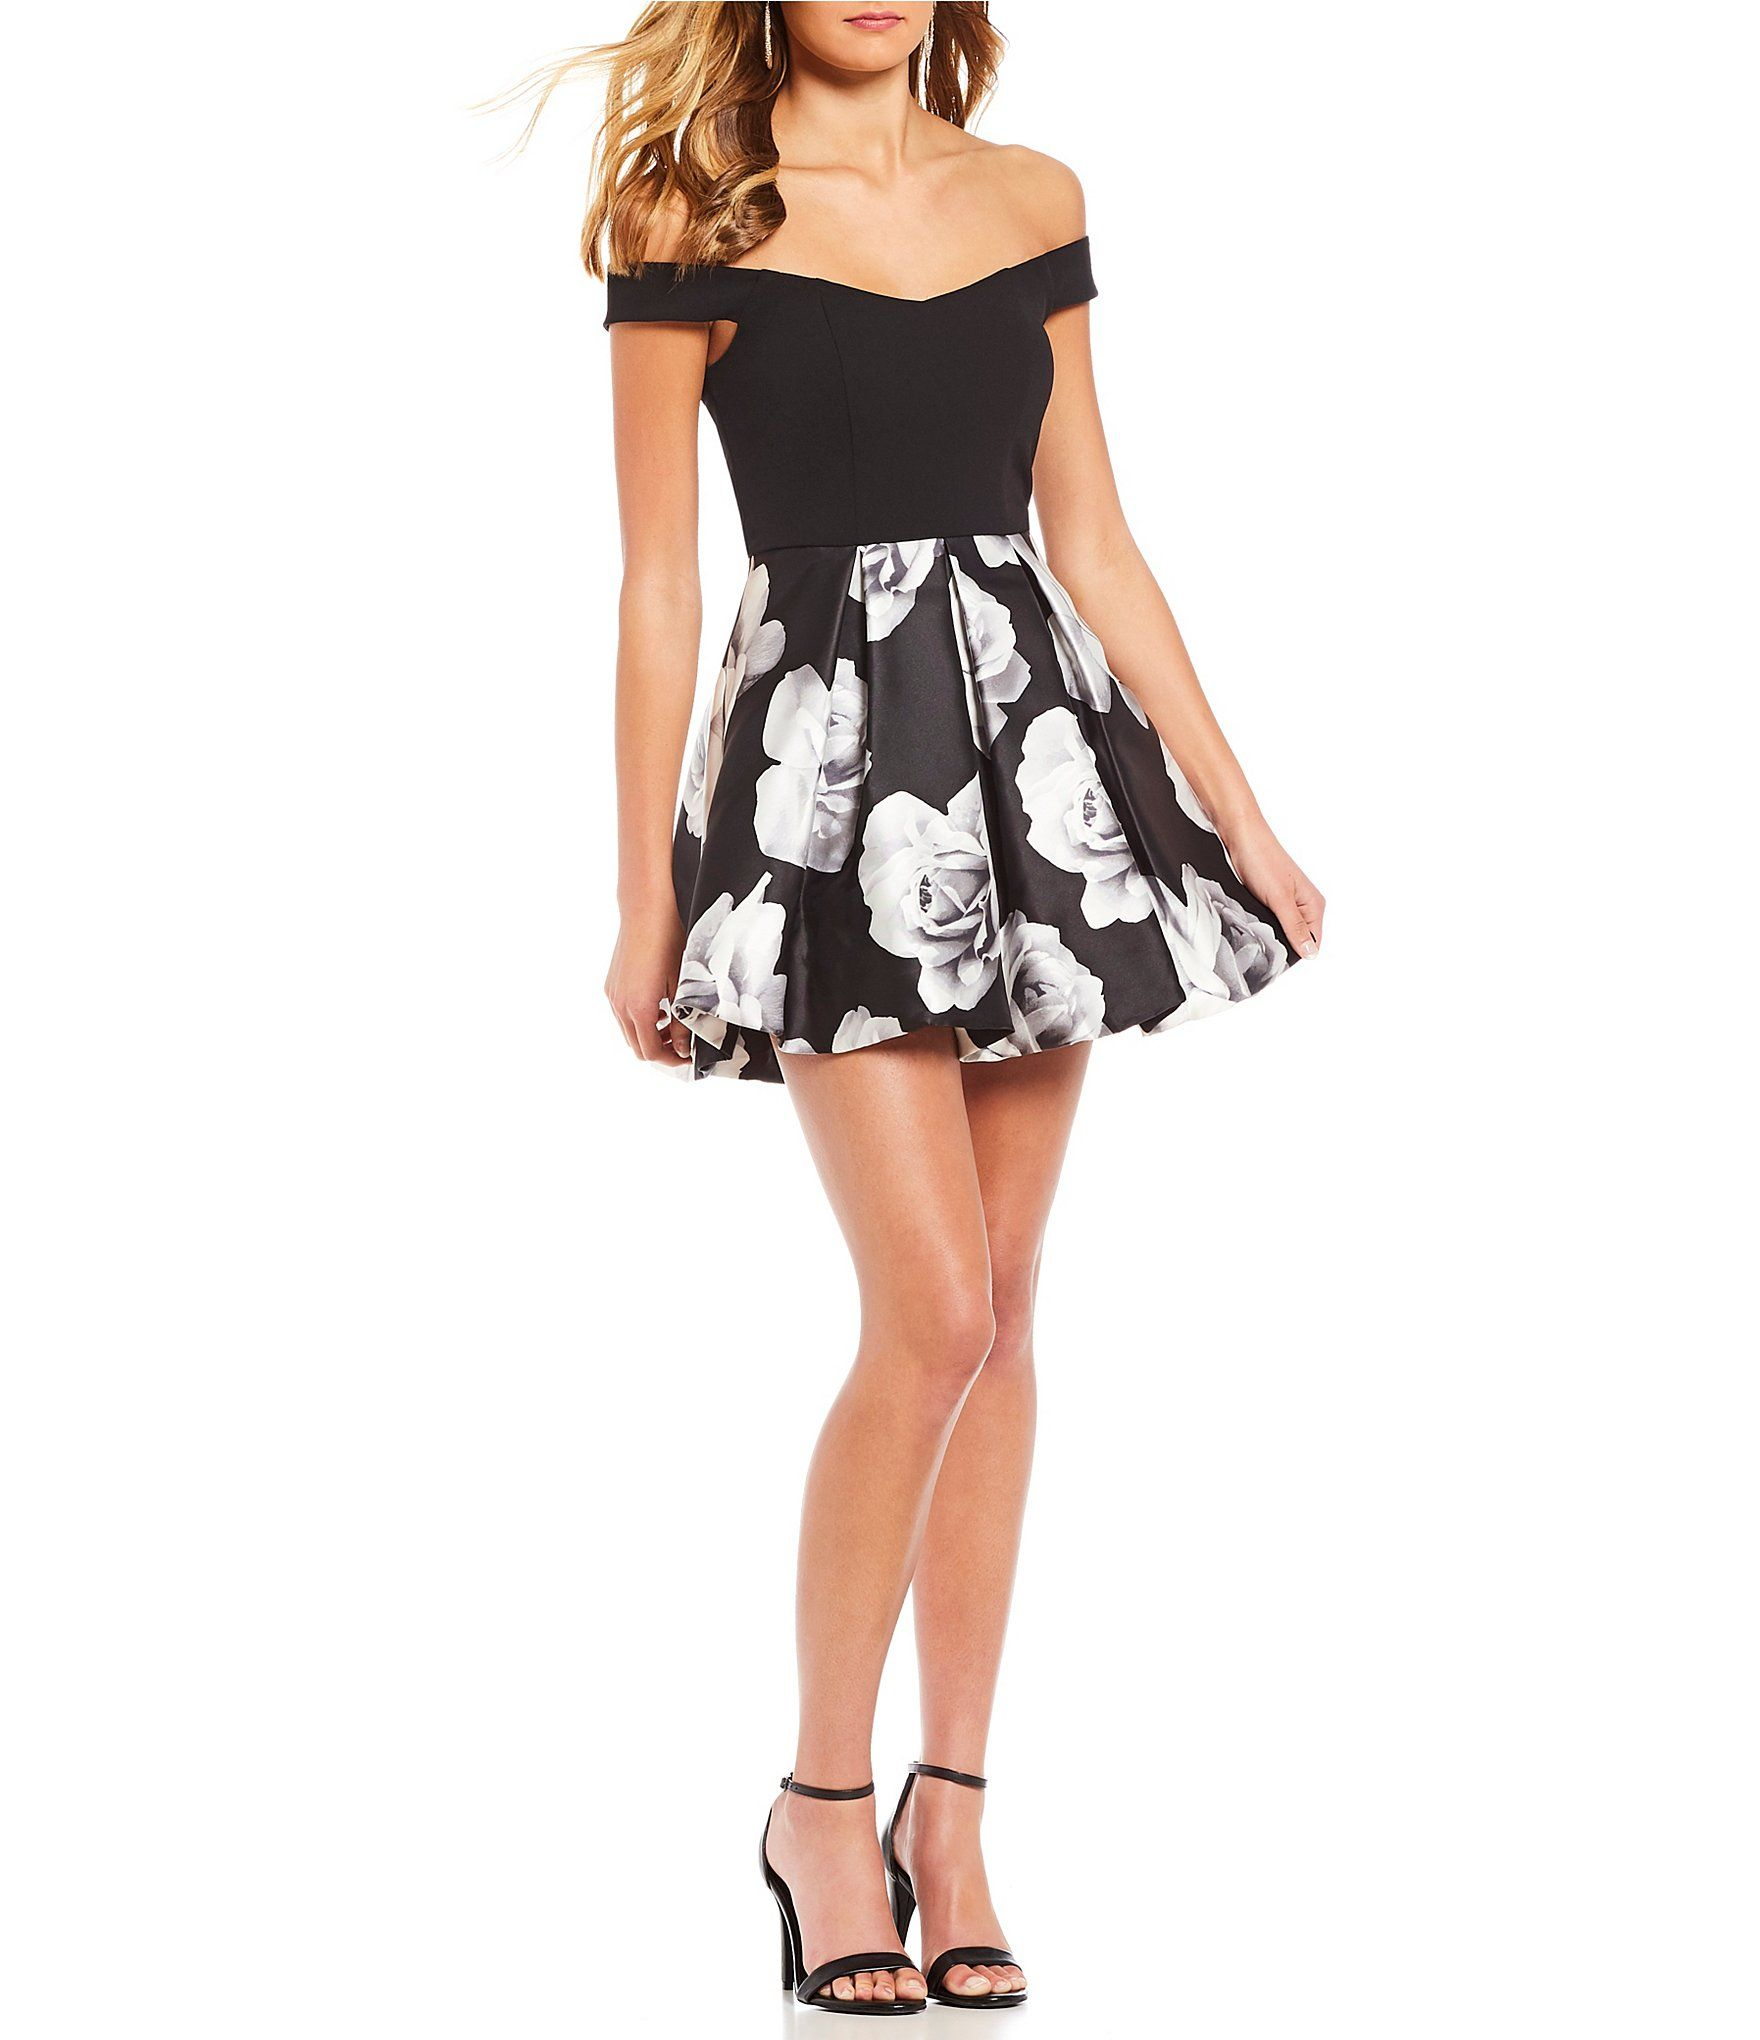 Xtraordinary offtheshoulder floral print fitandflare dress